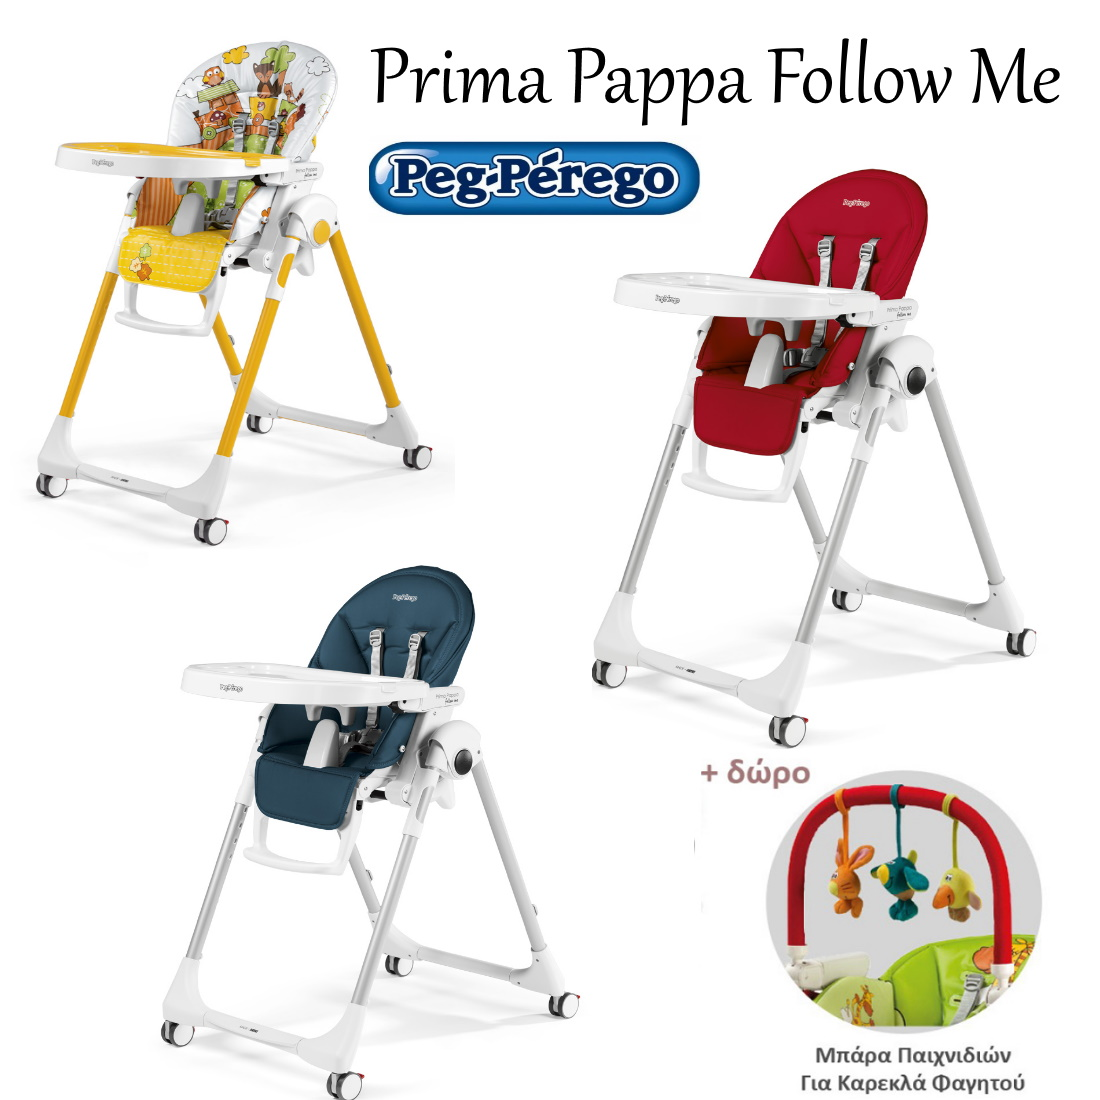 Prima Pappa Follow Me-ALL-fix